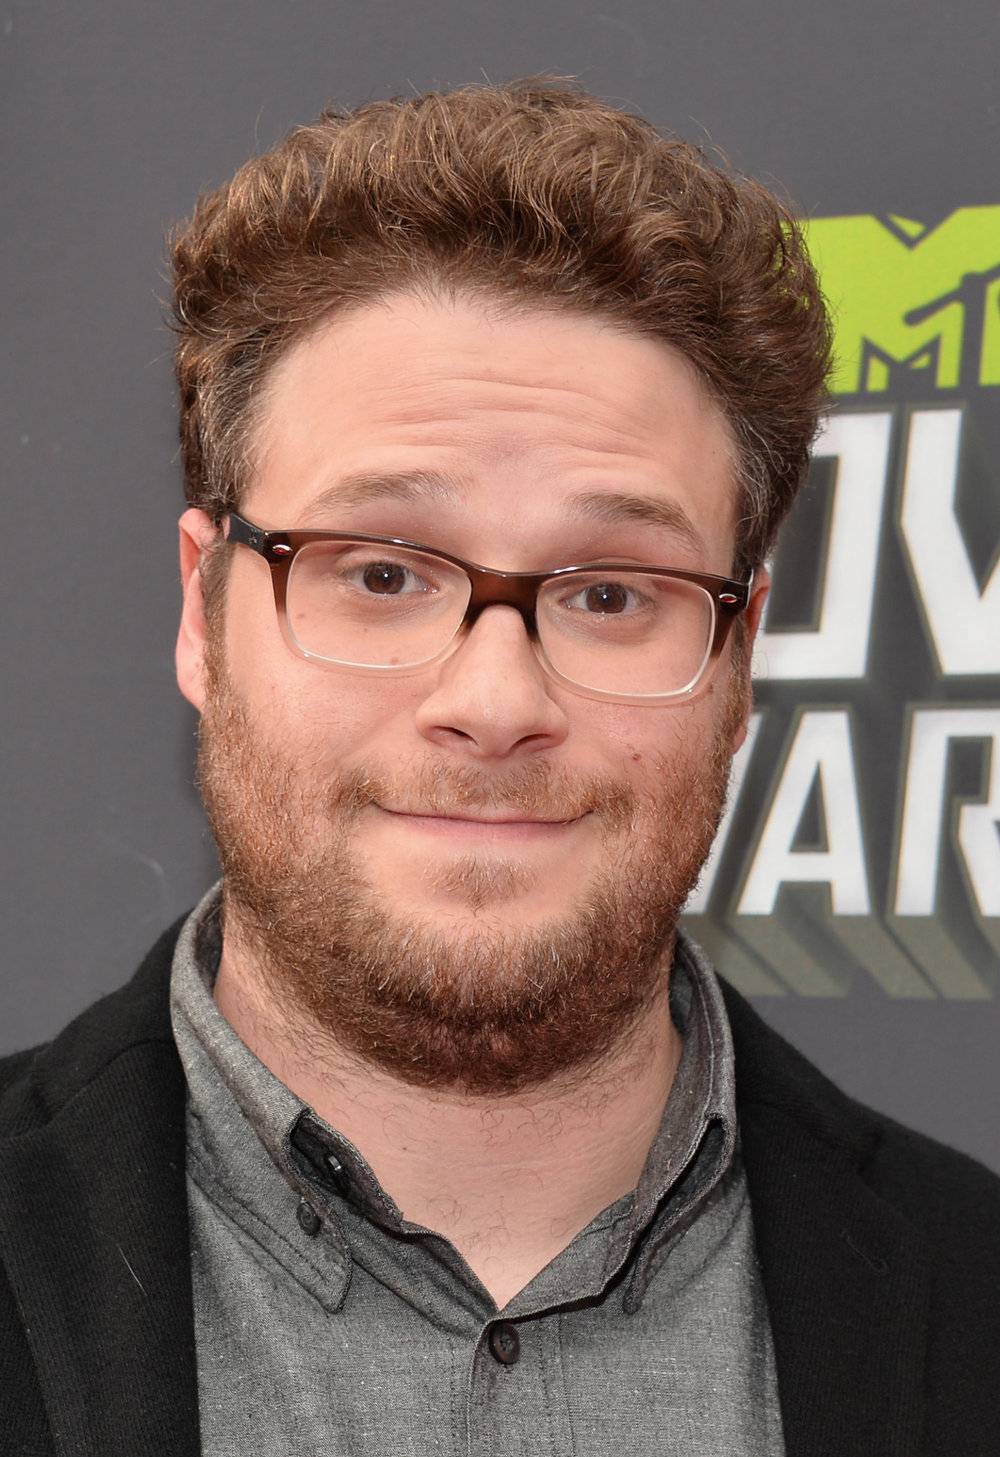 . Actor Seth Rogen arrives at the 2013 MTV Movie Awards at Sony Pictures Studios on April 14, 2013 in Culver City, California.  (Photo by Alberto E. Rodriguez/Getty Images)